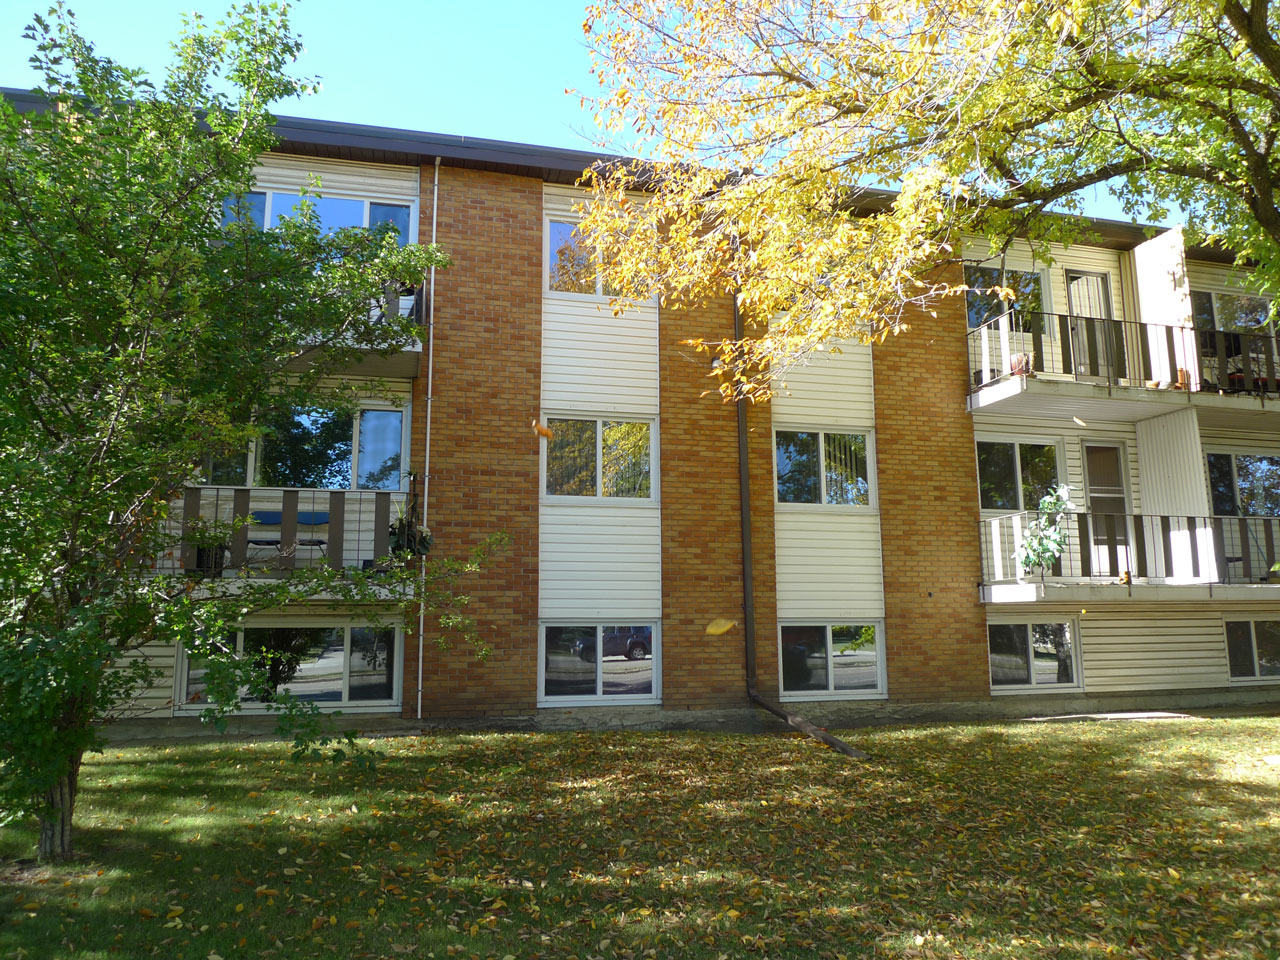 condominiumized-apartment-building-in-edmonton-alberta